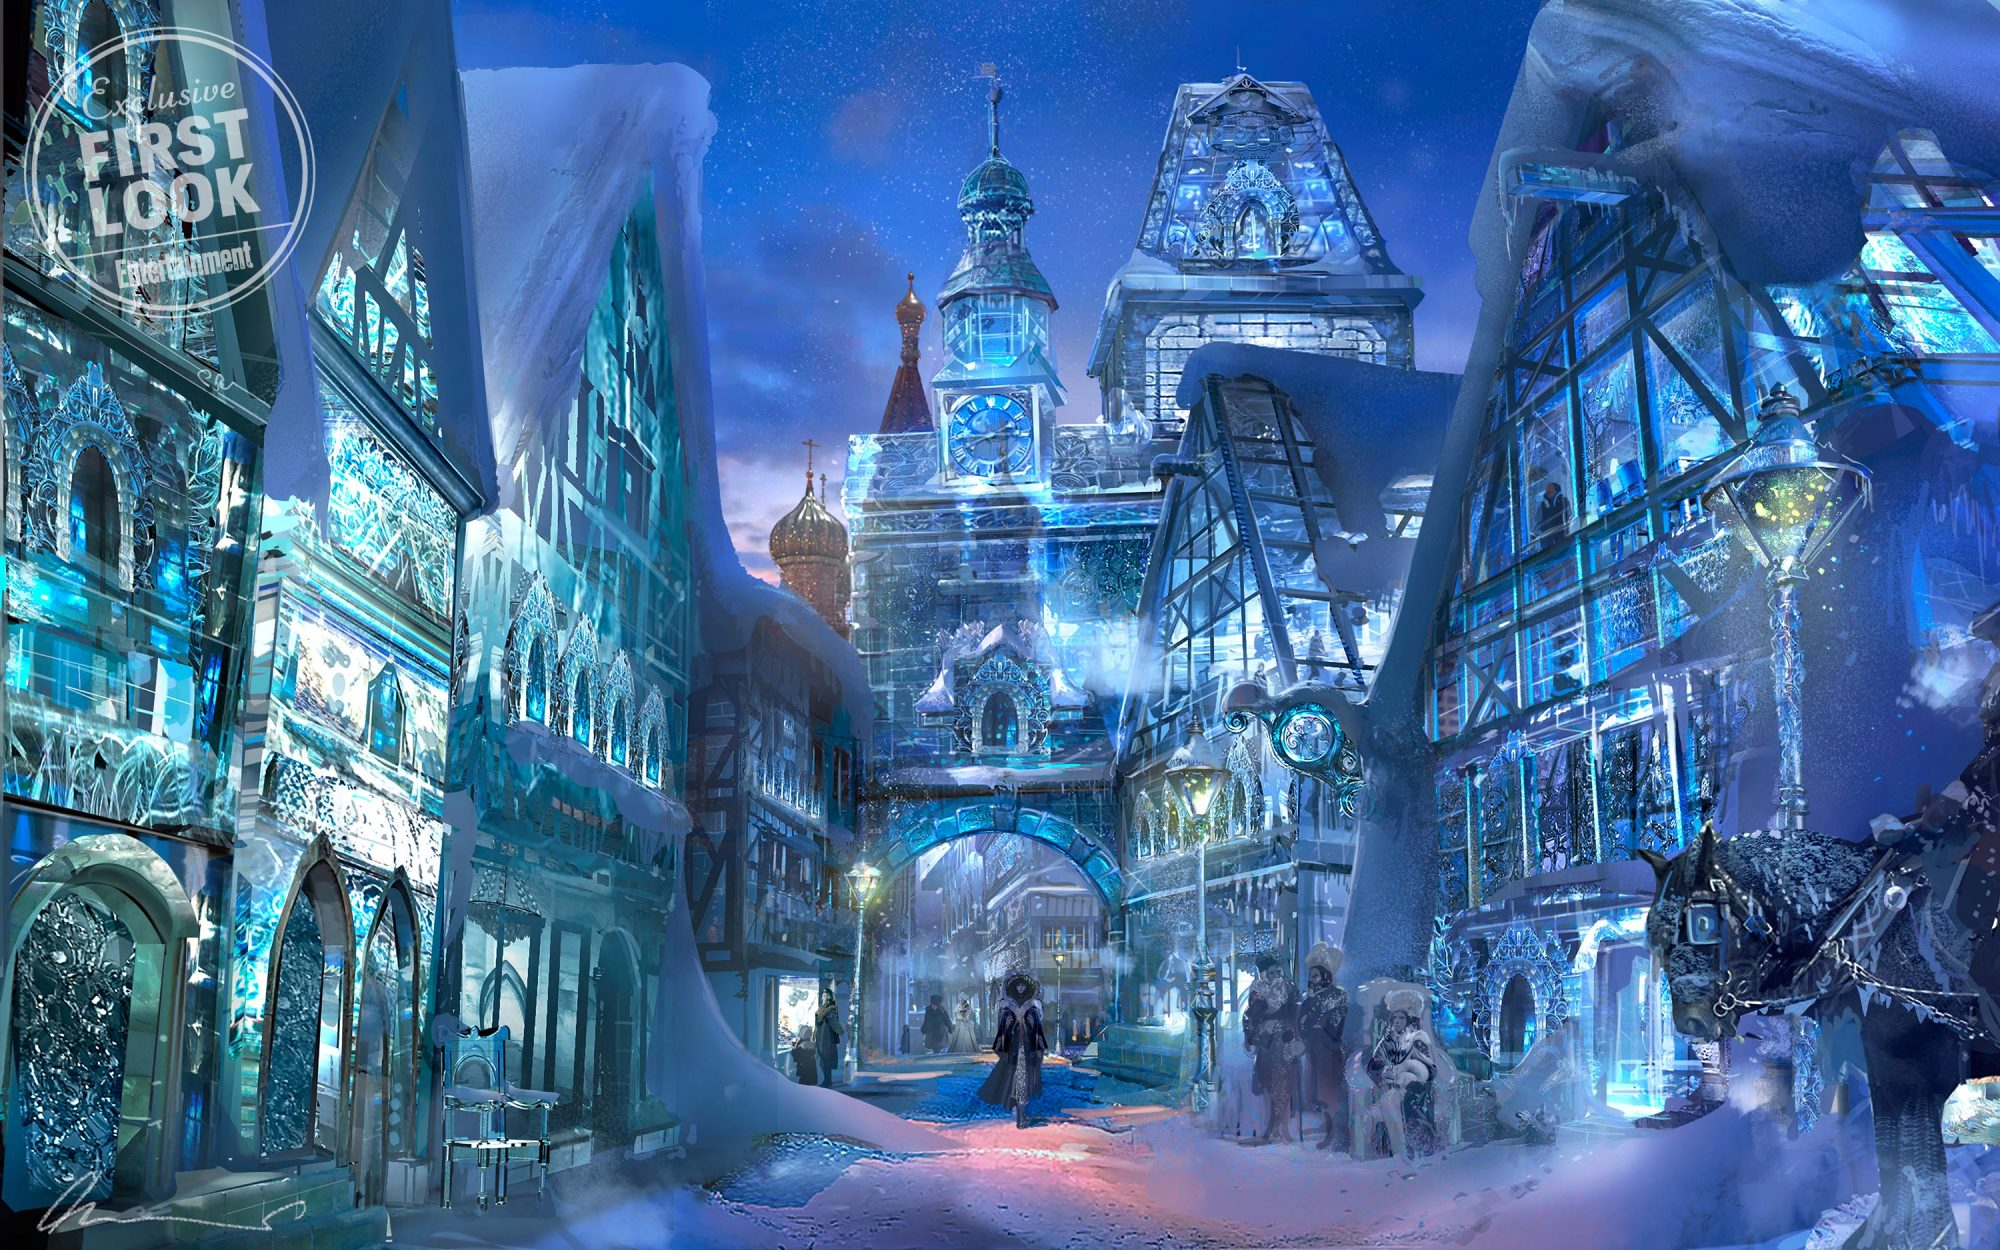 THE NUTCRACKER AND THE FOUR REALMSConcept art of the Land of Snowflakes